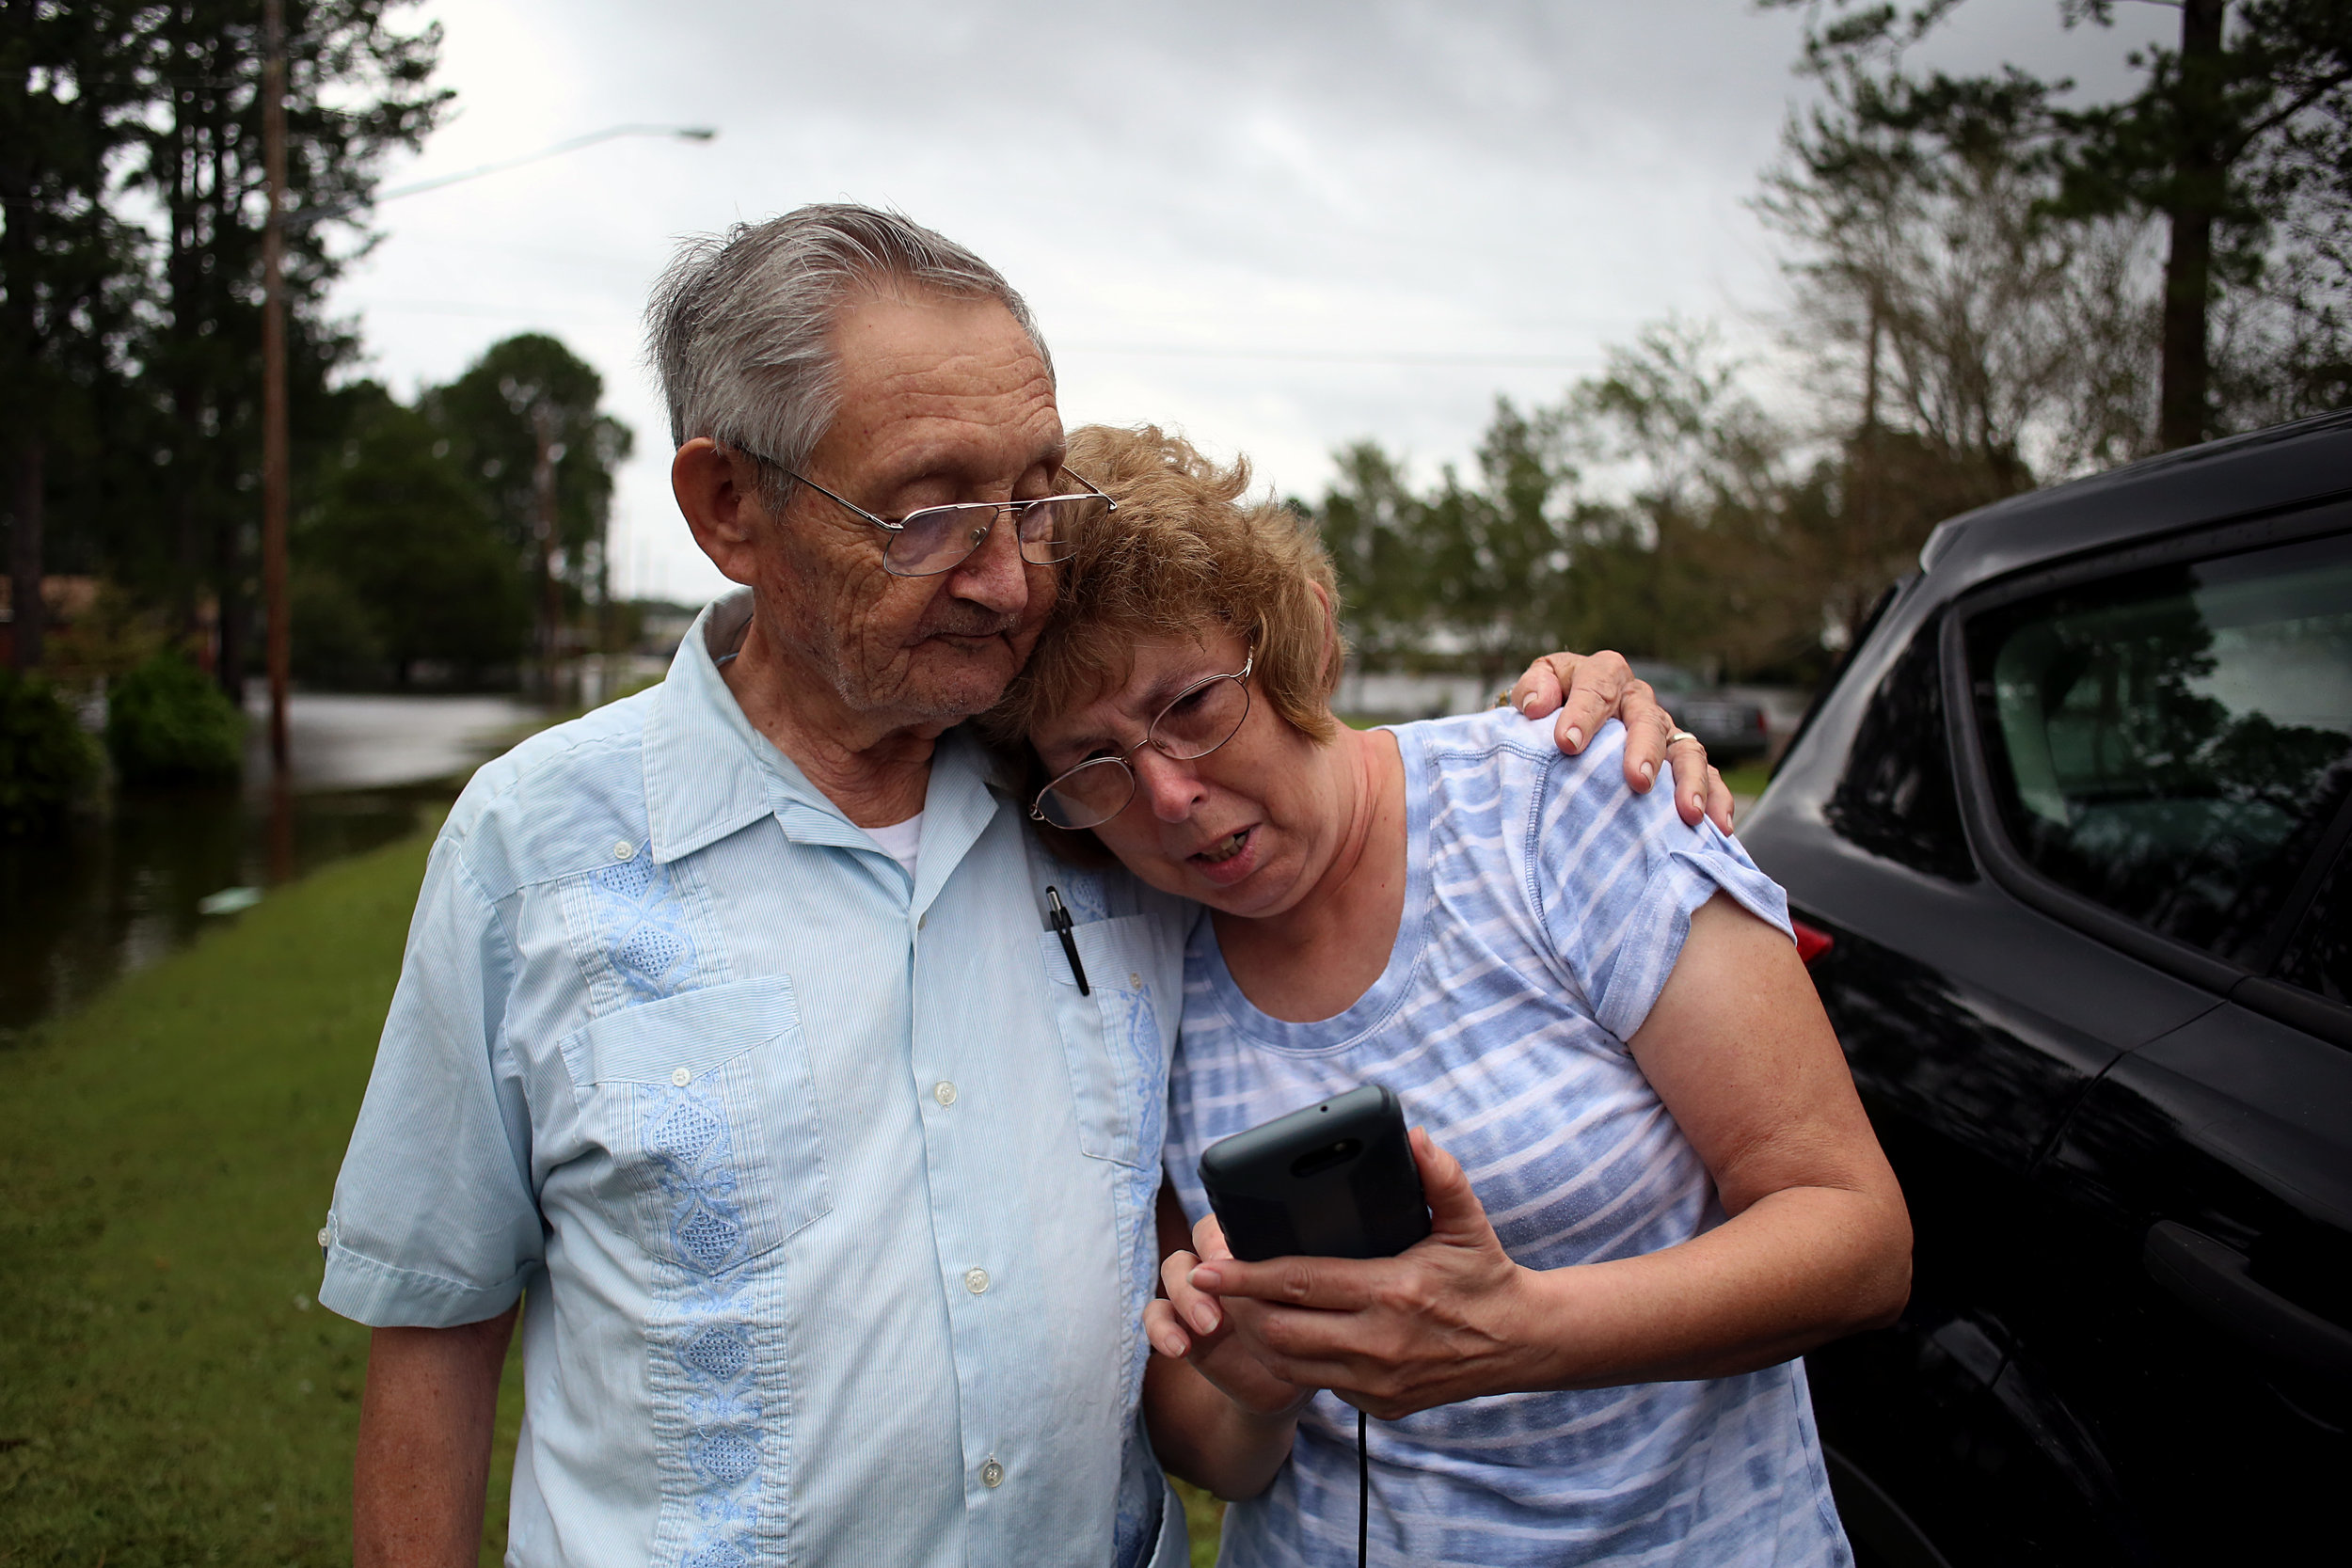 Cleo Jones, 85, embraces Annette Jones Kennedy outside his flooded home on Simmons Street as she shows him photos of her own flooded home, Sept. 15 in New Bern, N.C.